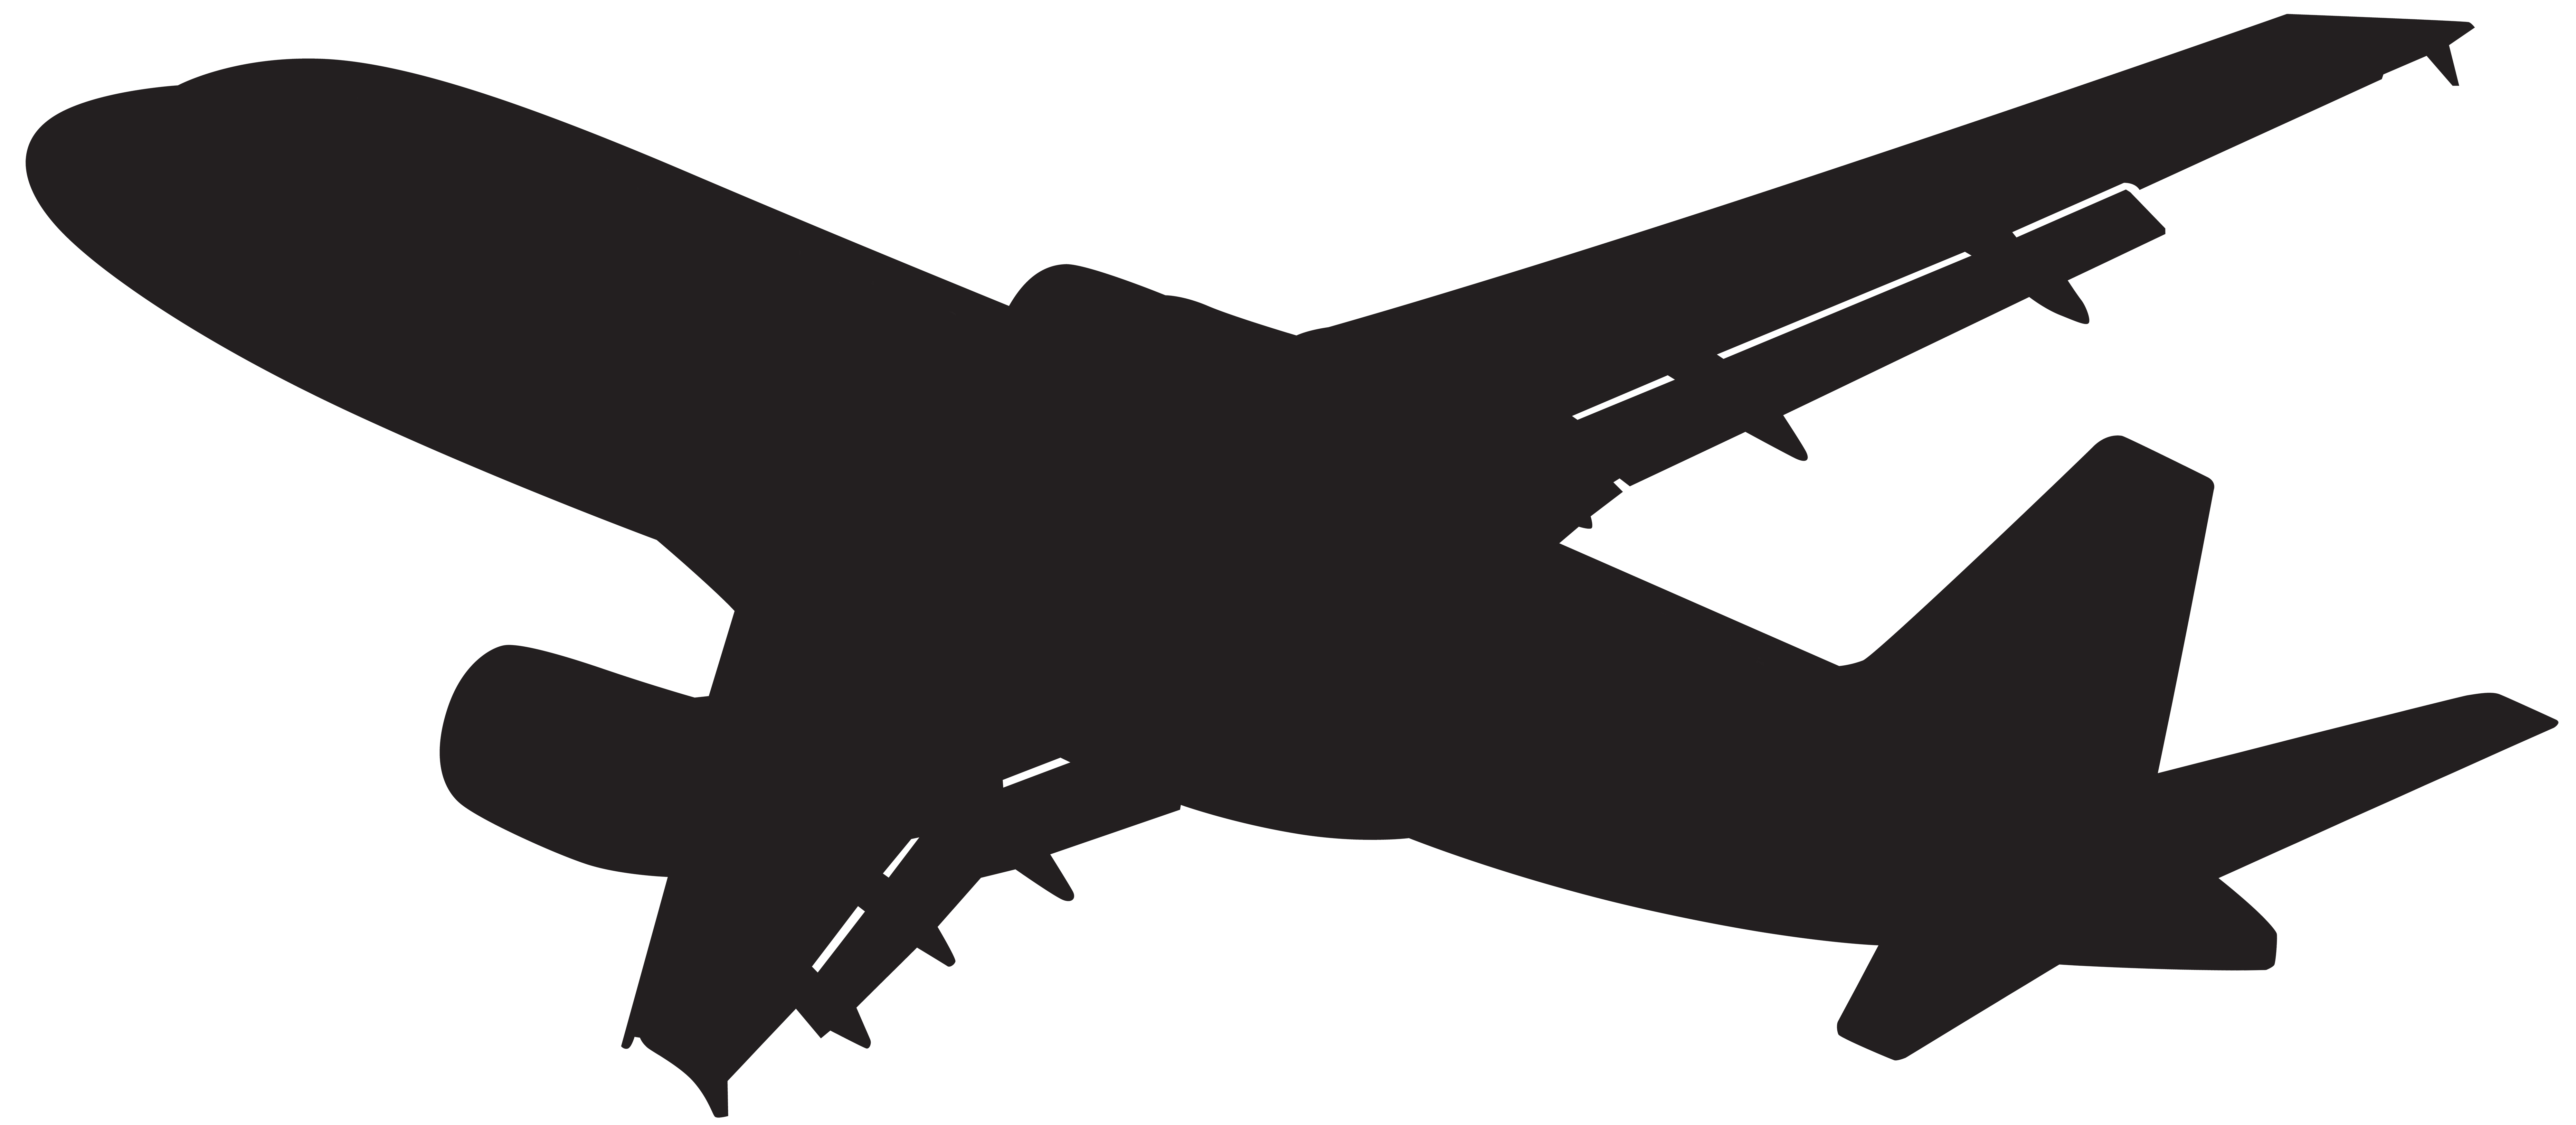 8000x3495 Airplane High Wing Plane Top View Clipart Collection